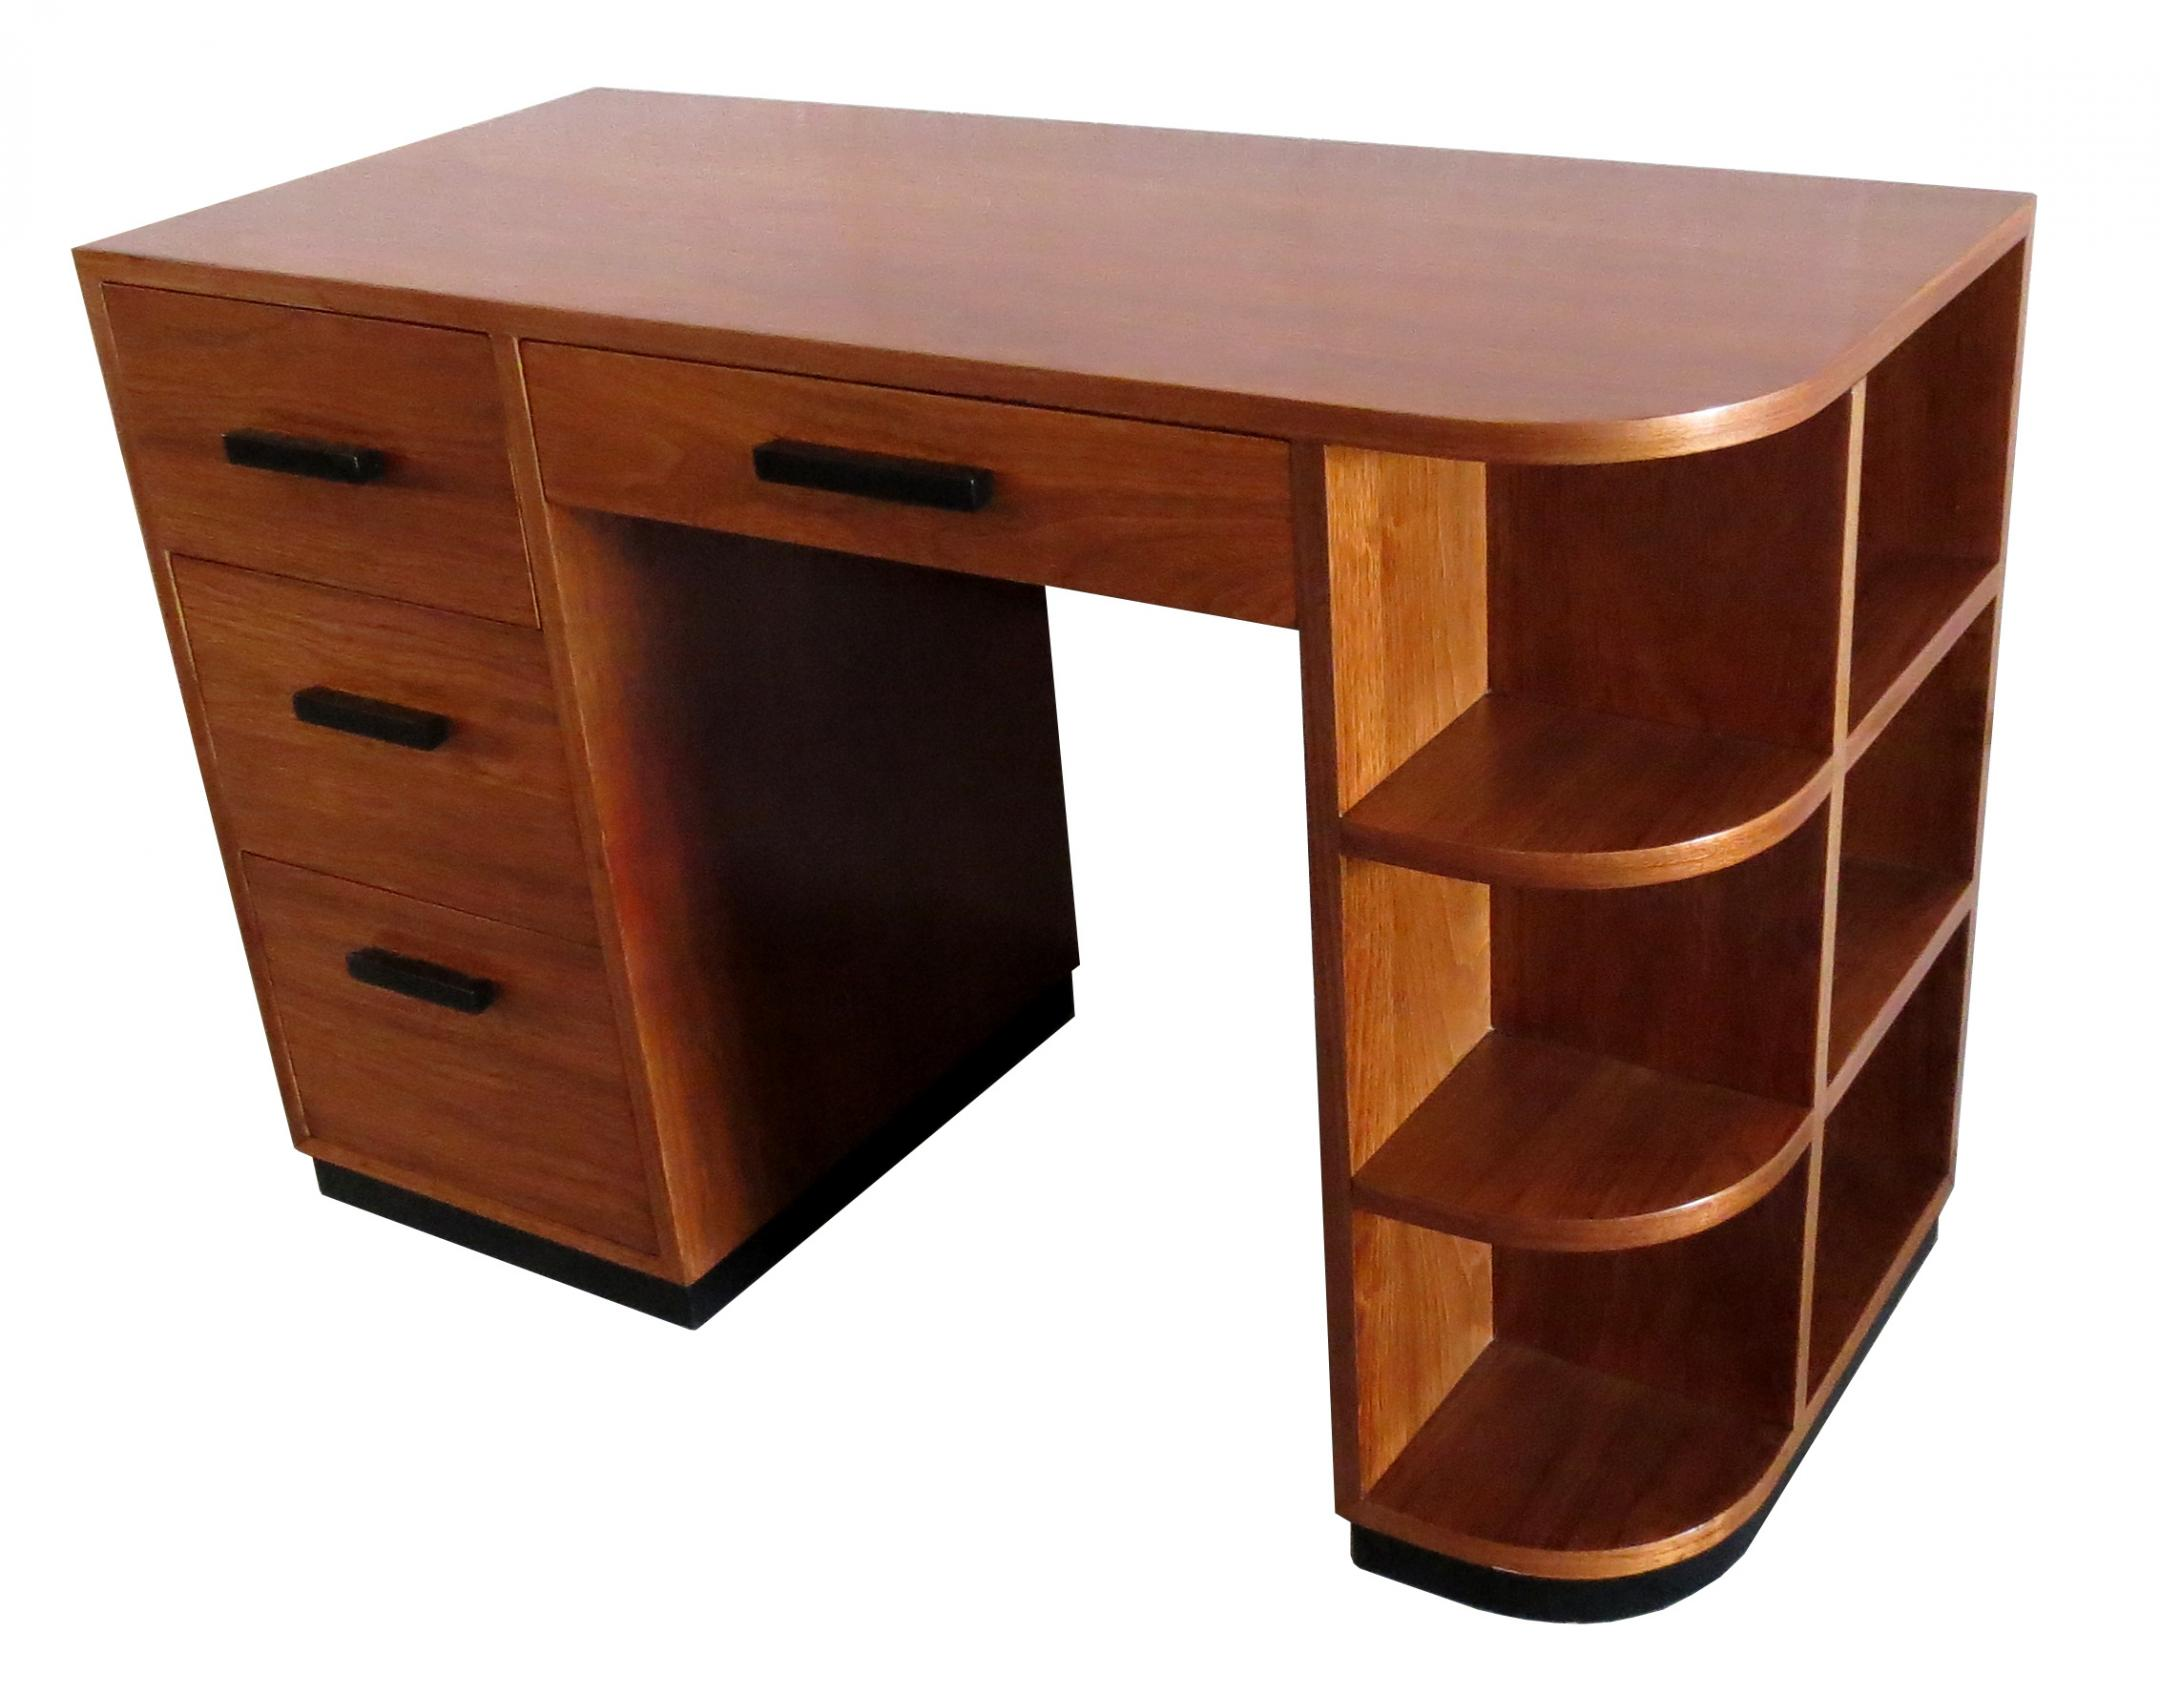 American Art Deco Desk By Modernage New York Modernism